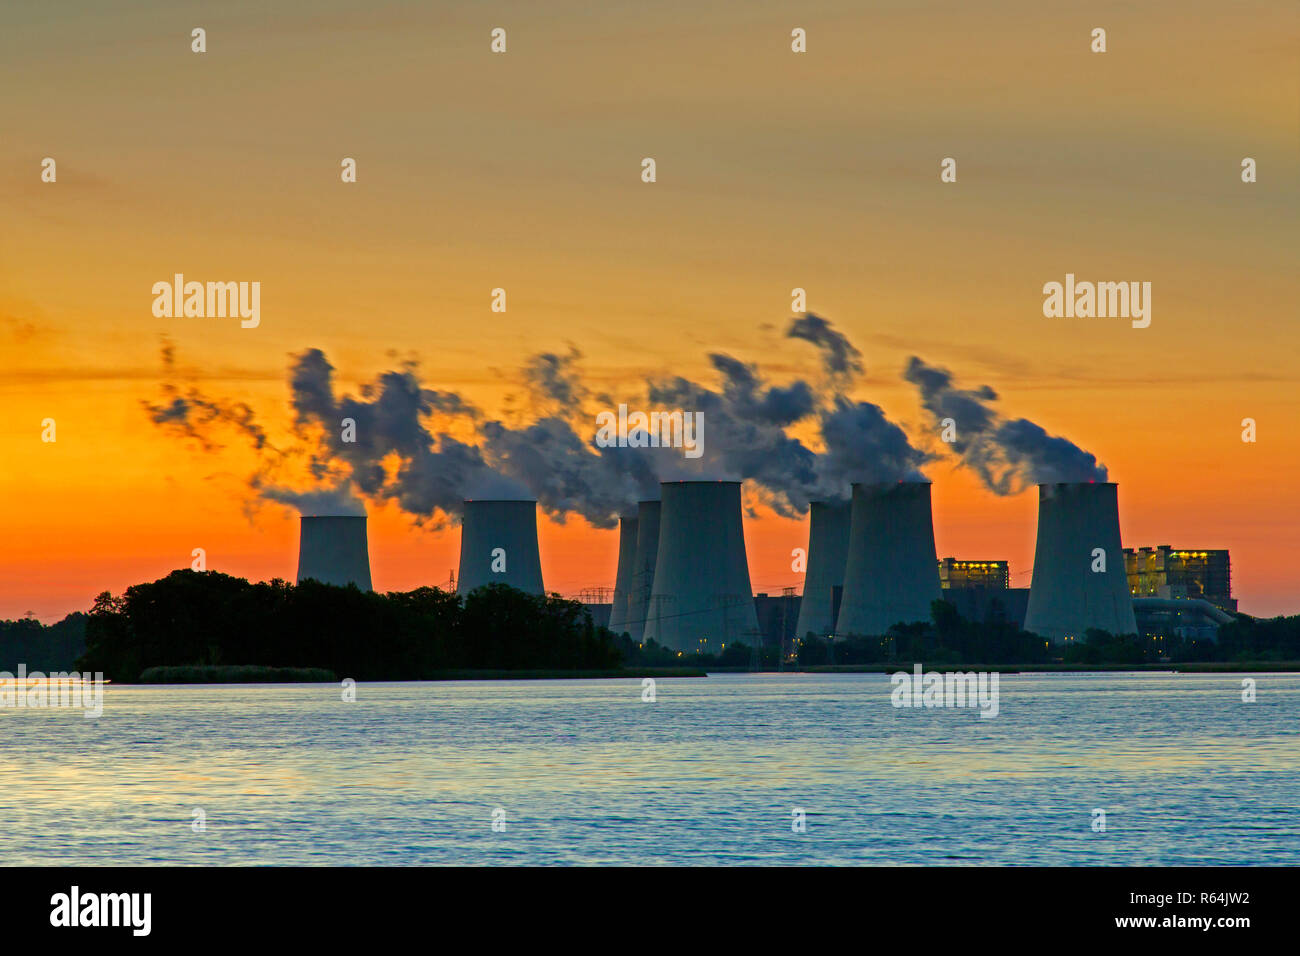 Jänschwalde / Jaenschwalde lignite-fired power station at sunset, third-largest brown coal power plant in Germany at Brandenburg, Spree-Neiße Stock Photo